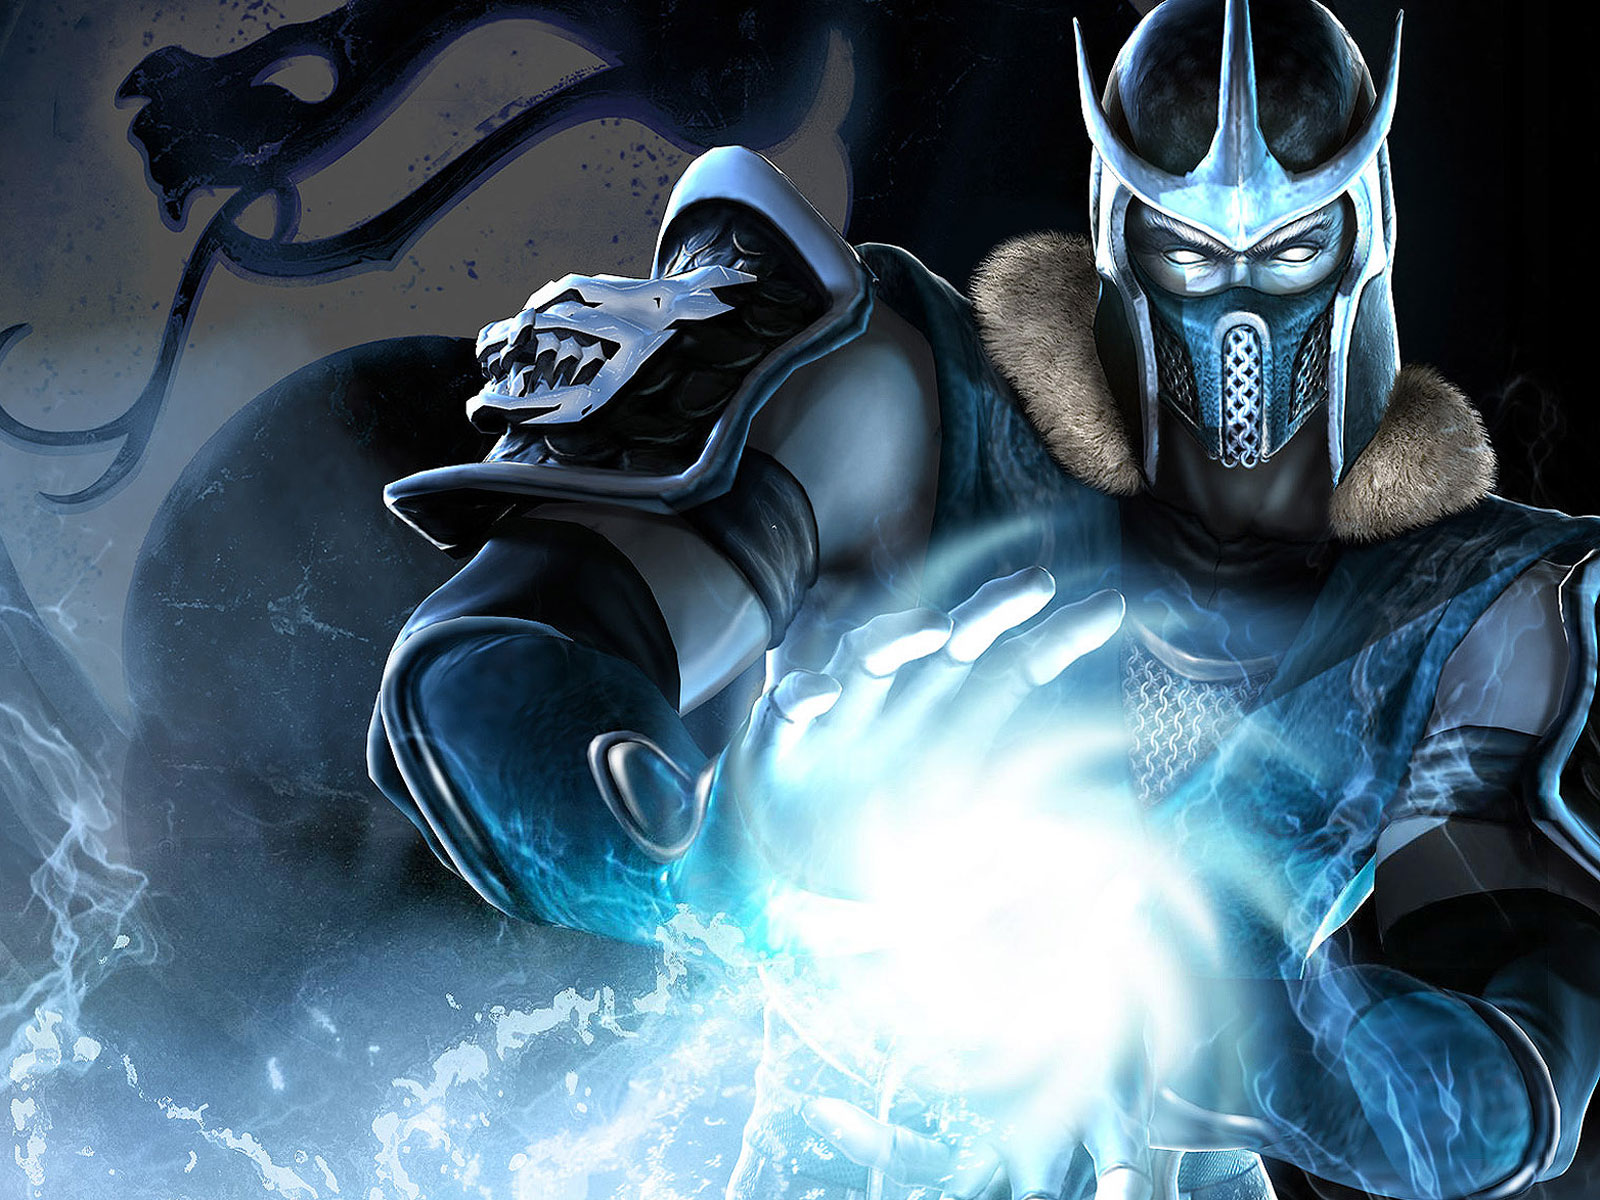 Mortal Kombat Deception Sub Zero 2 Wallpaper